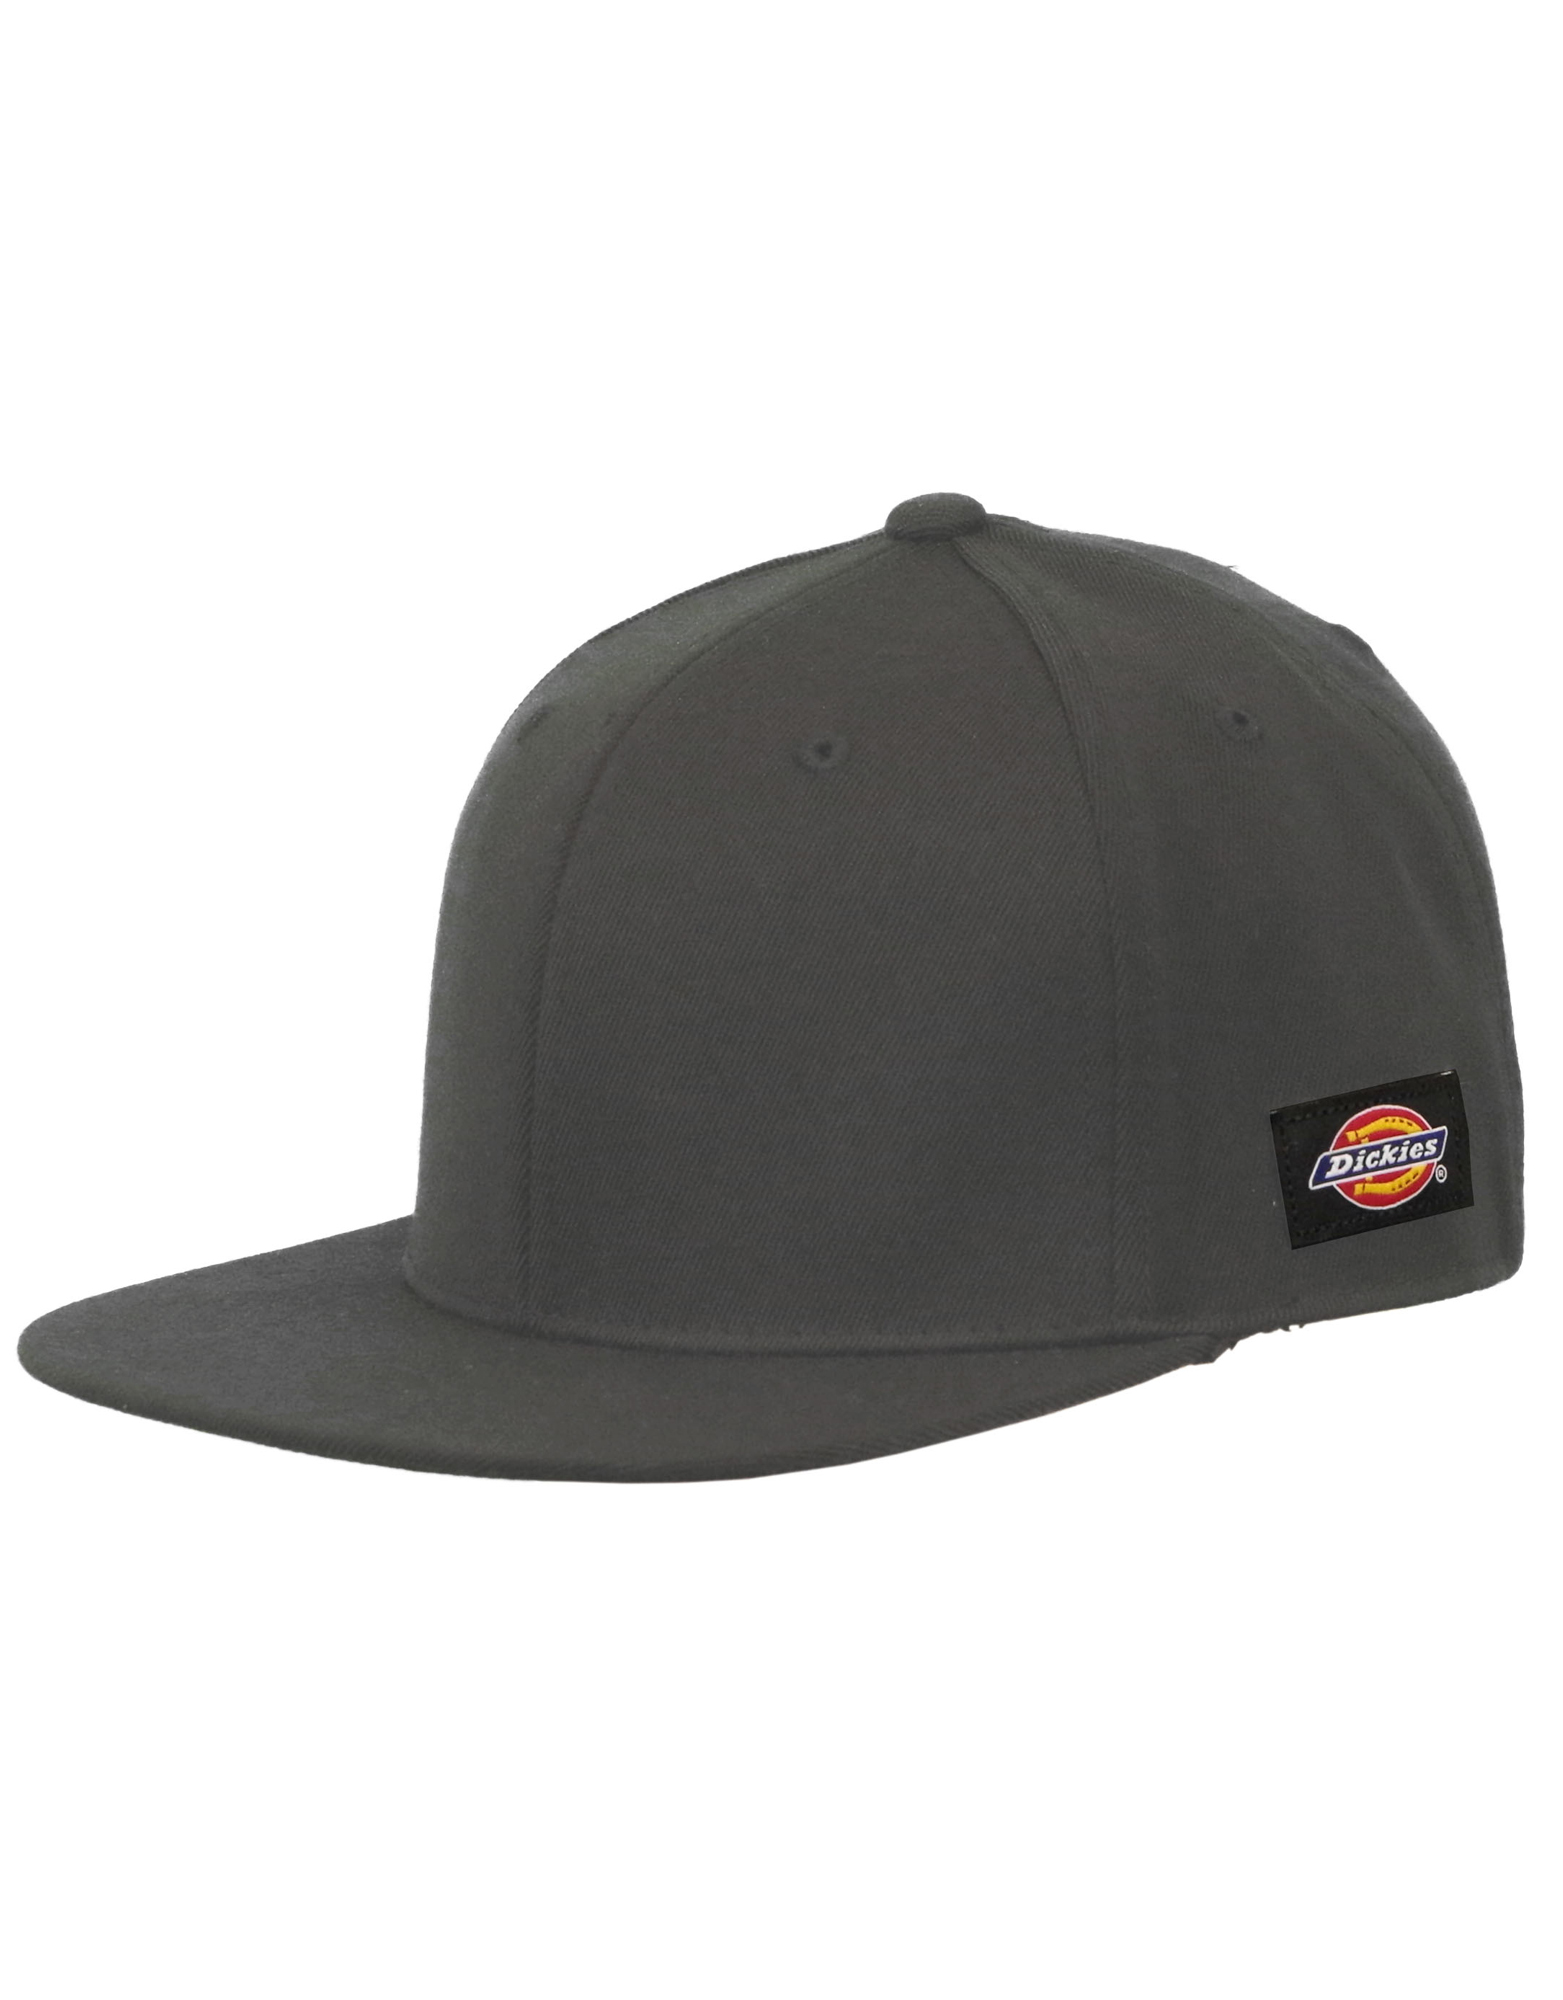 Dickies Flat Bill Hat - Charcoal Gray (CH)